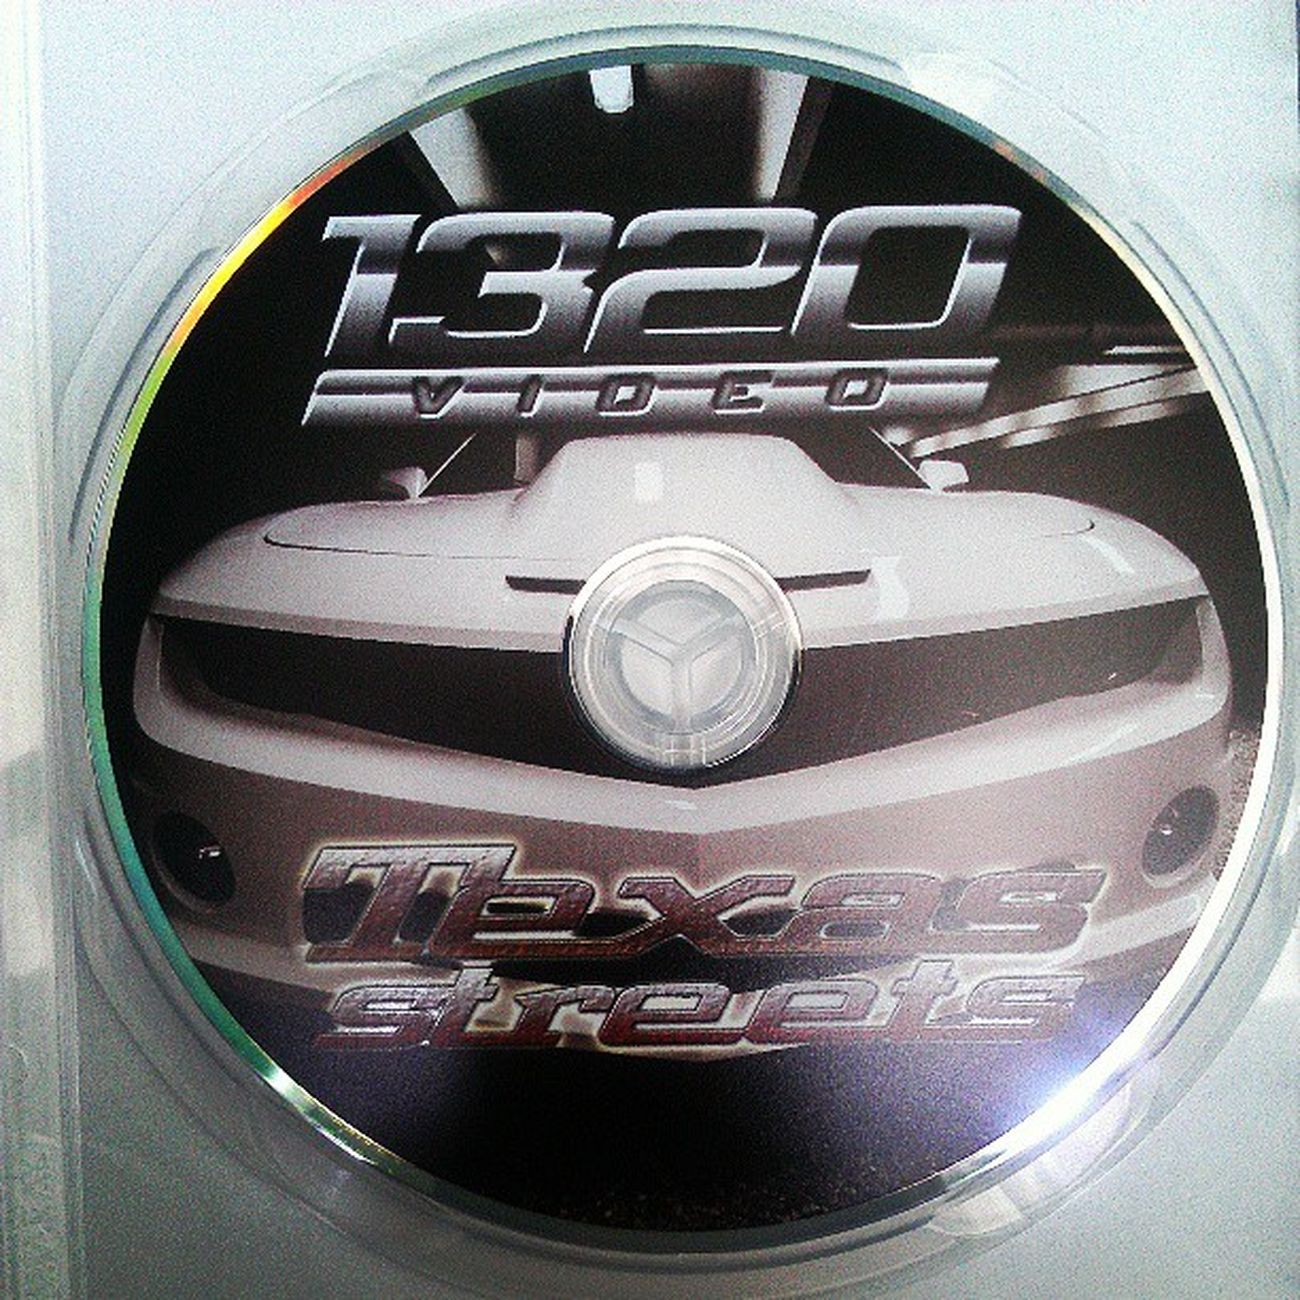 I got my copy! 1320Video Racing DVD TexasStreets StreetRacing Entertainment Speed InstaCar CarInstagram Gtr Corvette Supras Lamborghinis Lambo